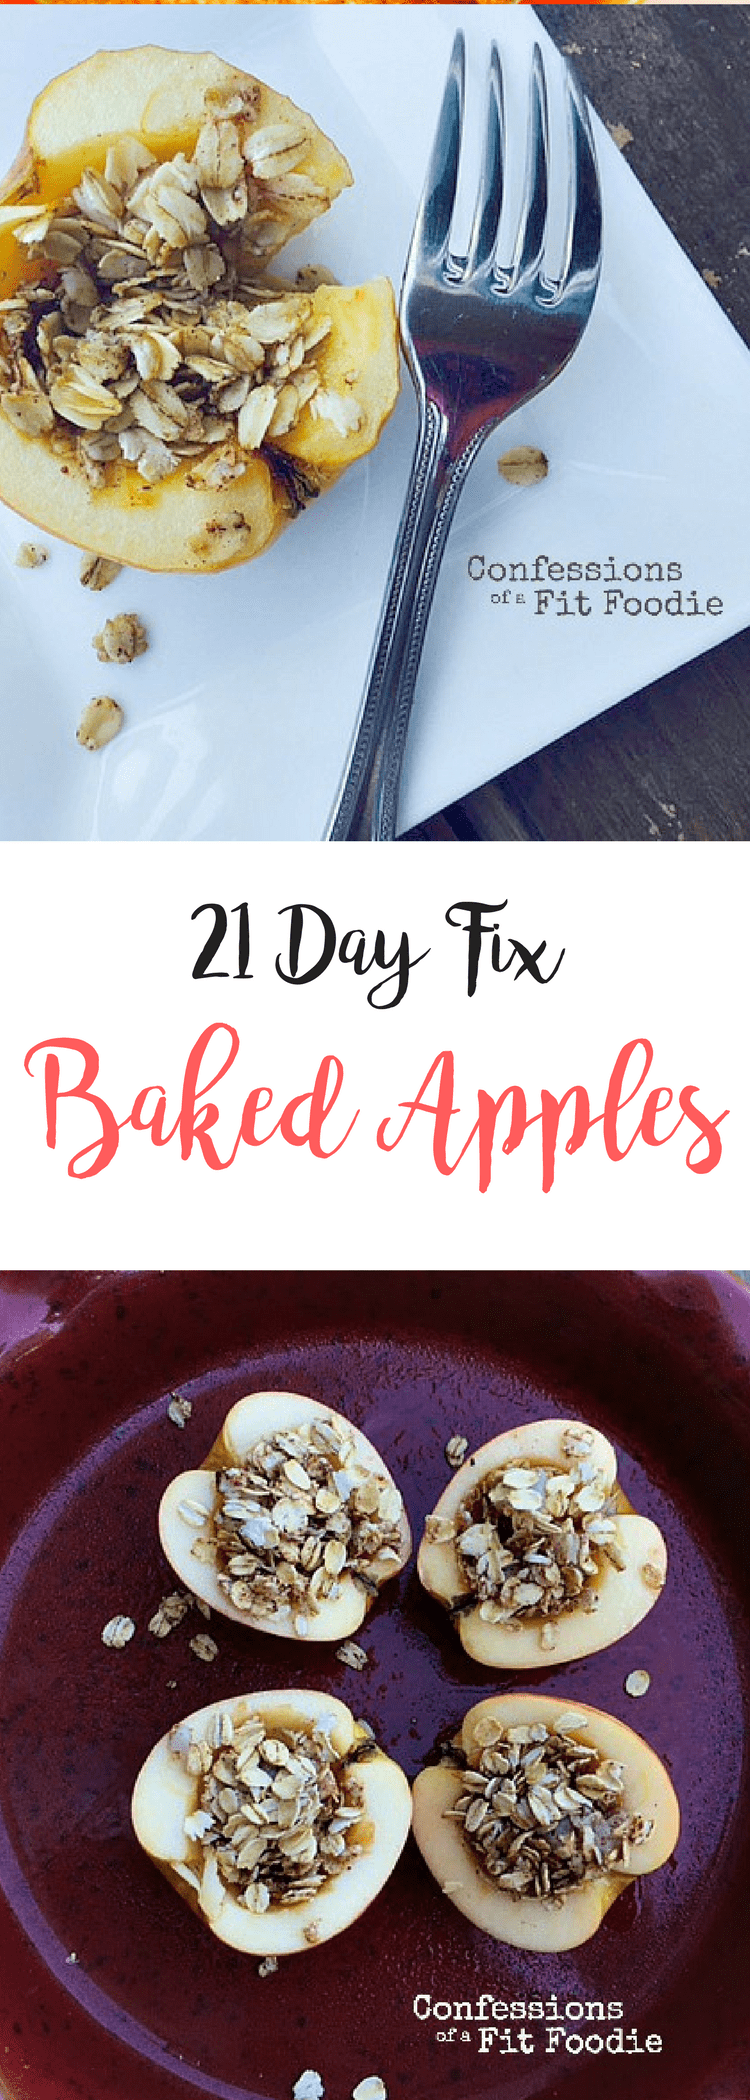 Baked Apples {21 Day Fix} | Confessions of a Fit Foodie